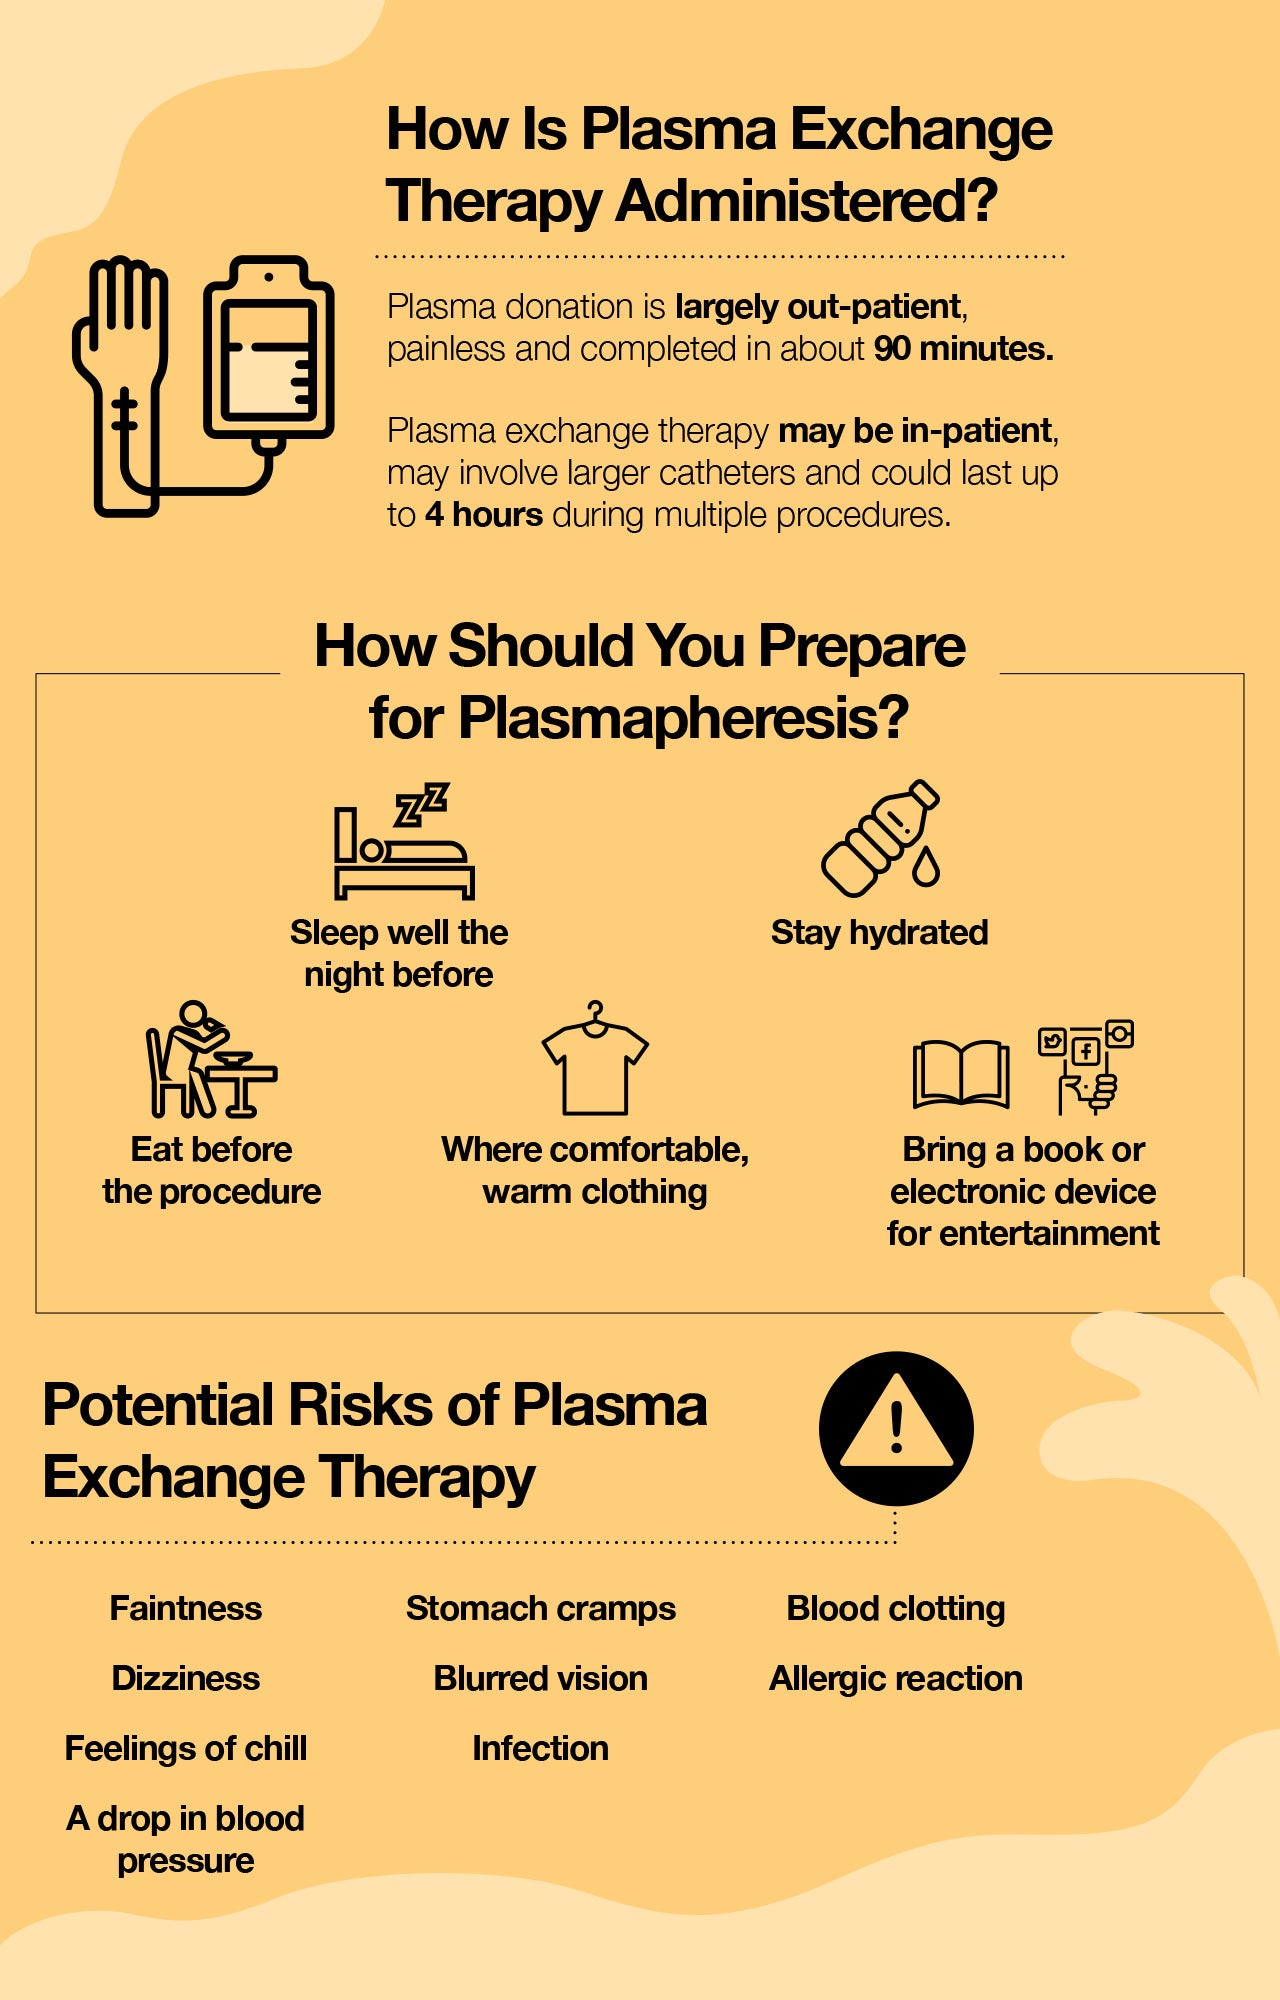 How Is Plasma Exchange Therapy Administered?